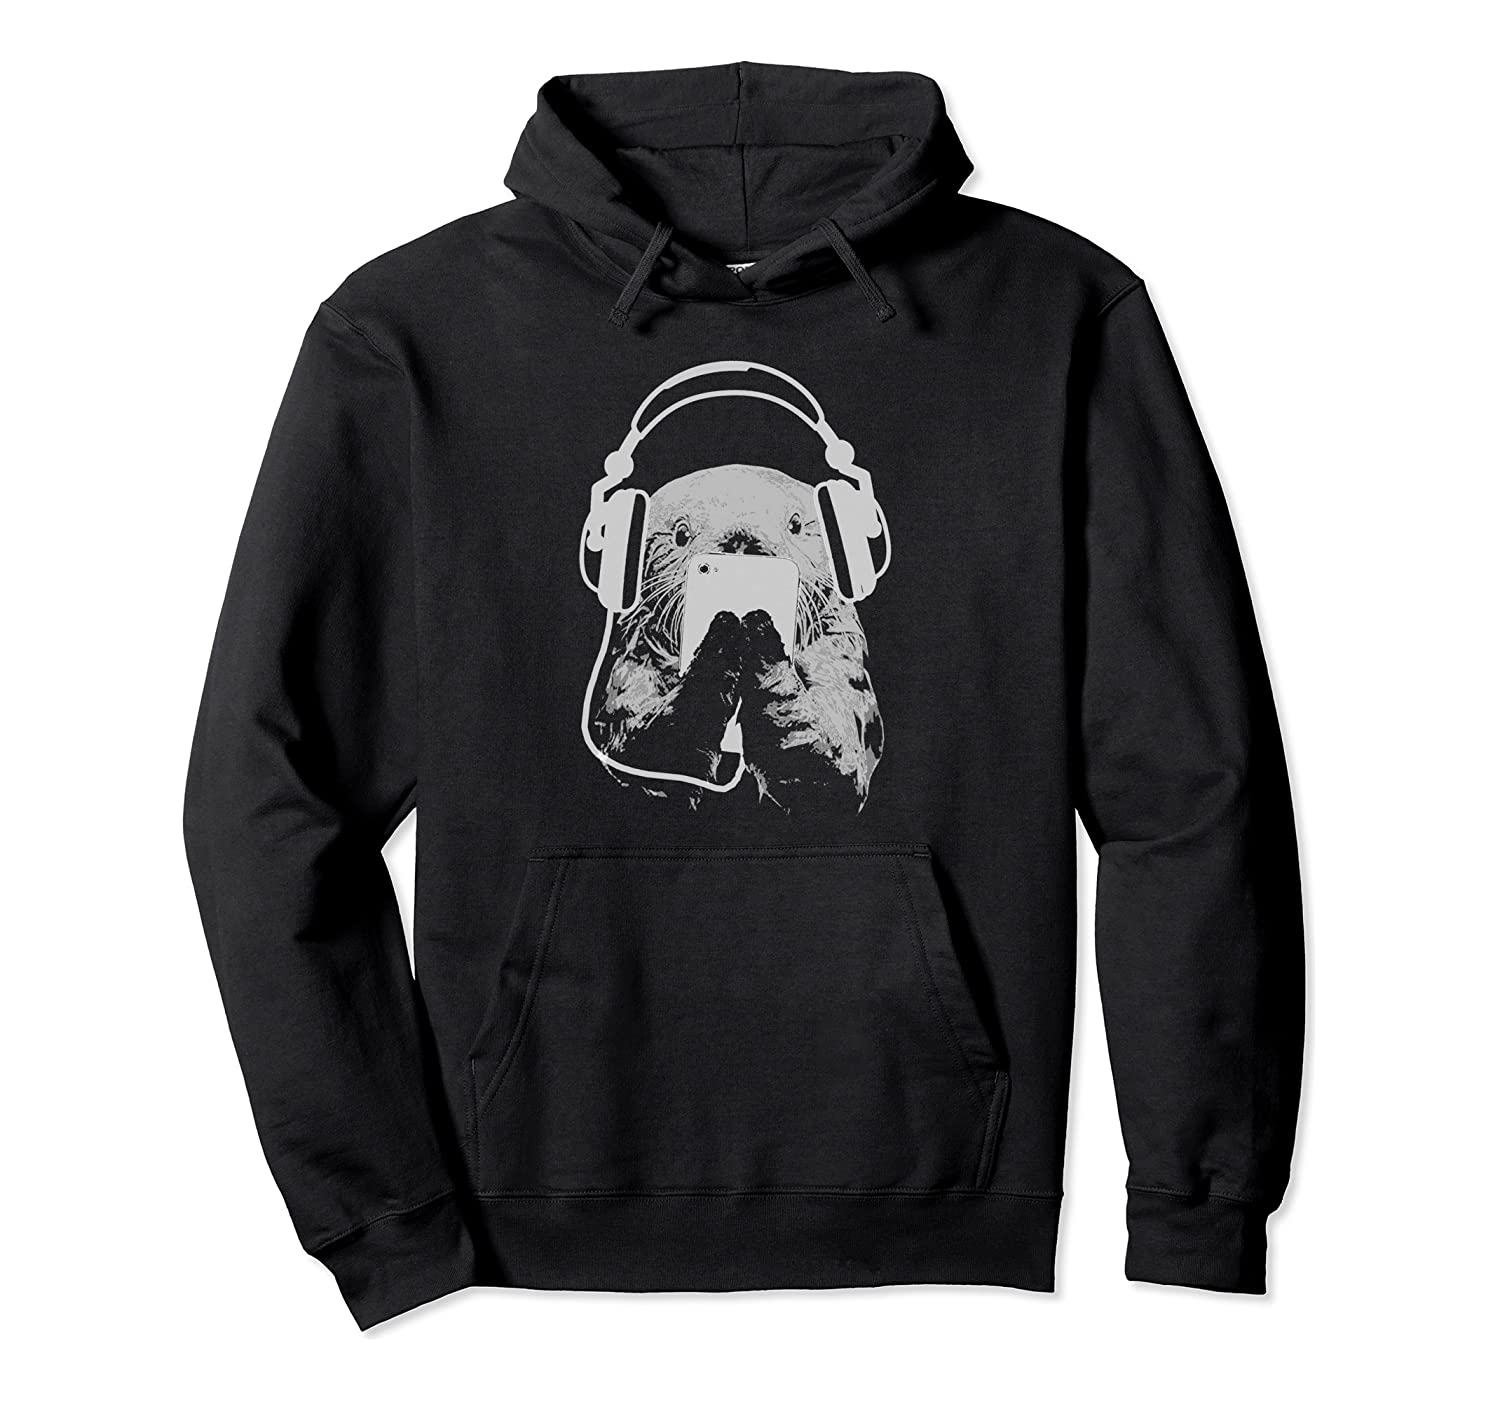 Sea Otter with Cell Phone and Headphones Hoodie